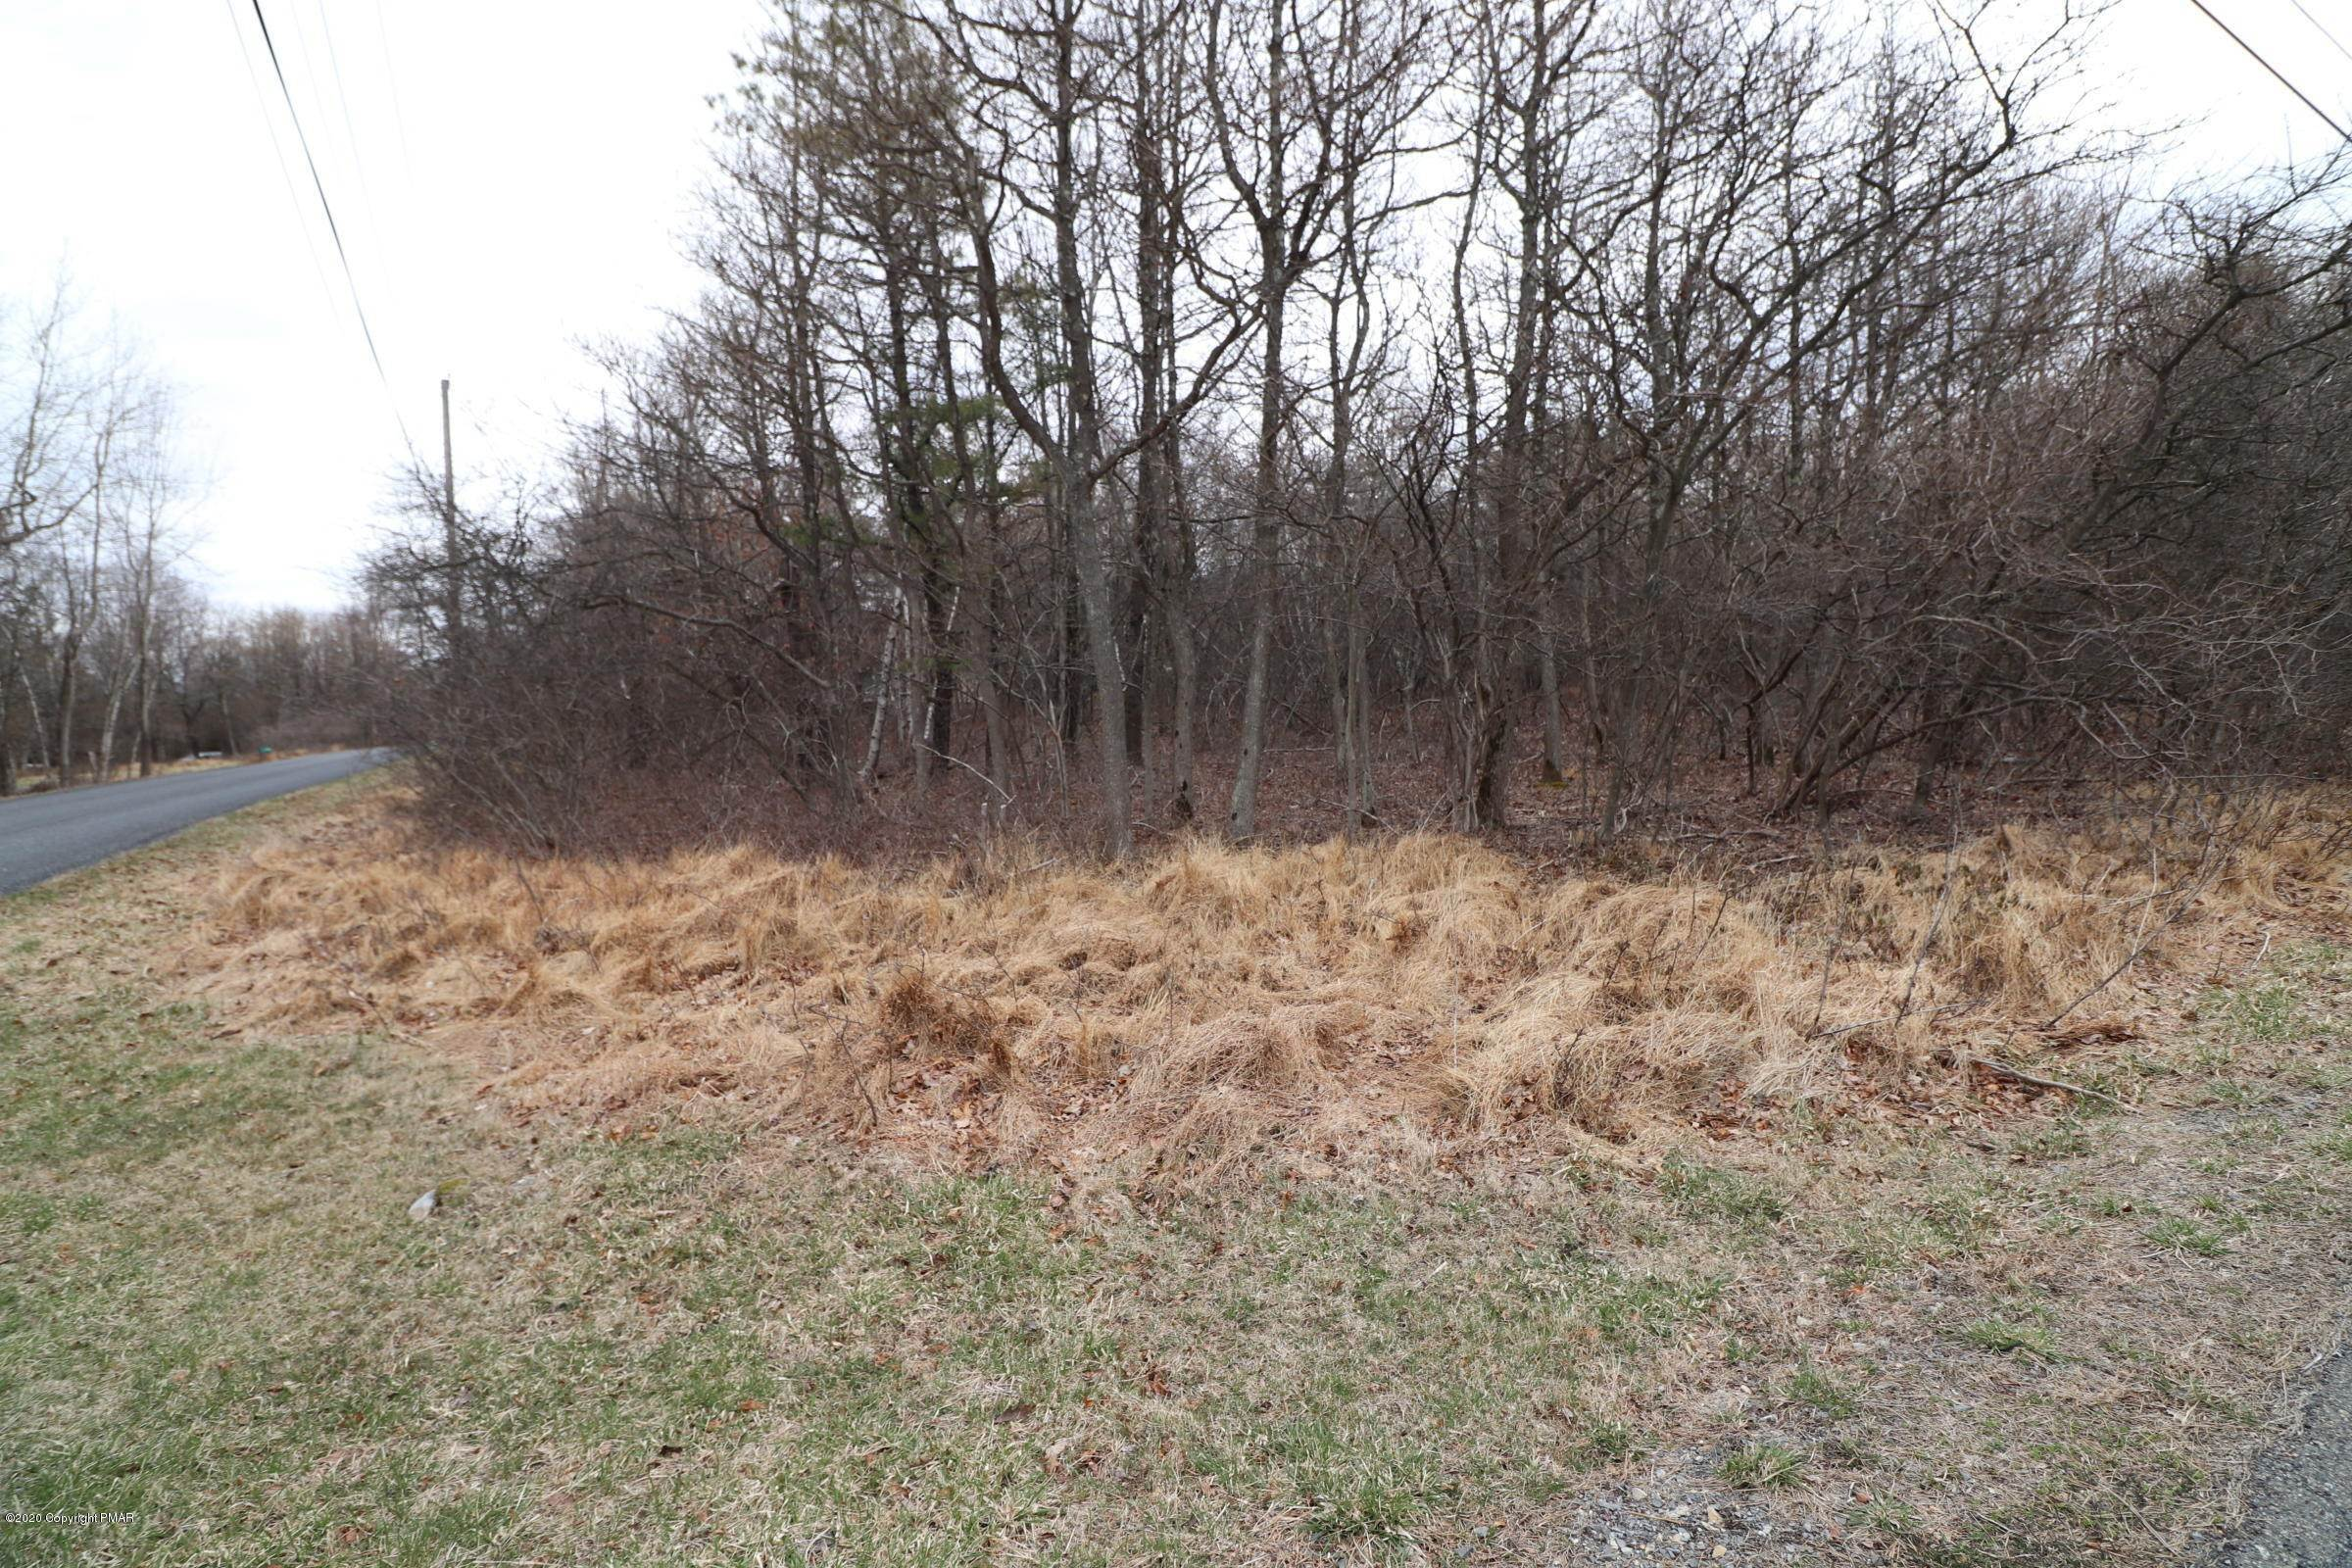 Land for Sale at Maccauley Road & Berryman Ln Albrightsville, Pennsylvania 18229 United States